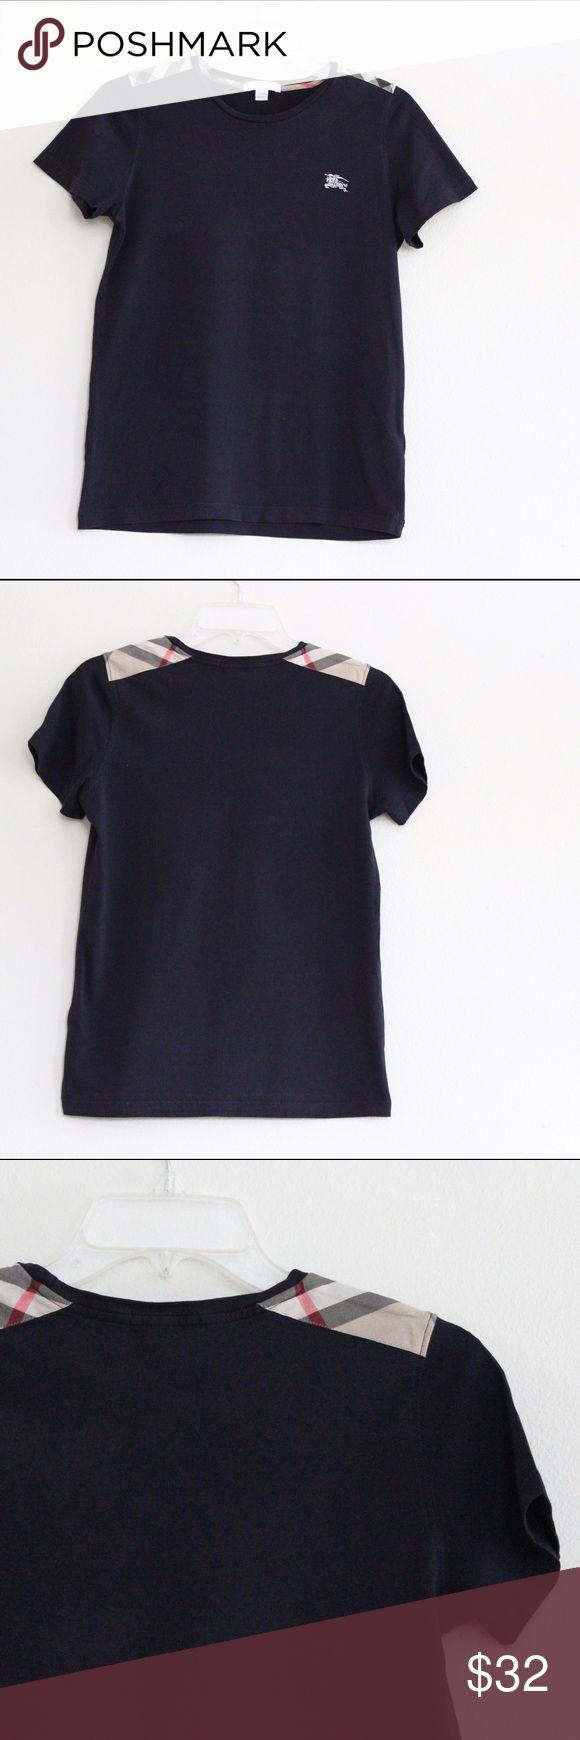 "Burberry Navy Tee Tag says size 14Y - for children but can fit a female size XS/S  Measurements: Bust: 17.25"" Shoulder: 14"" Length: 24""  Smoke-Free & Pet-Free Home No Model Photos NO TRADES Reasonable Offers Welcome Burberry Tops Tees - Short Sleeve"